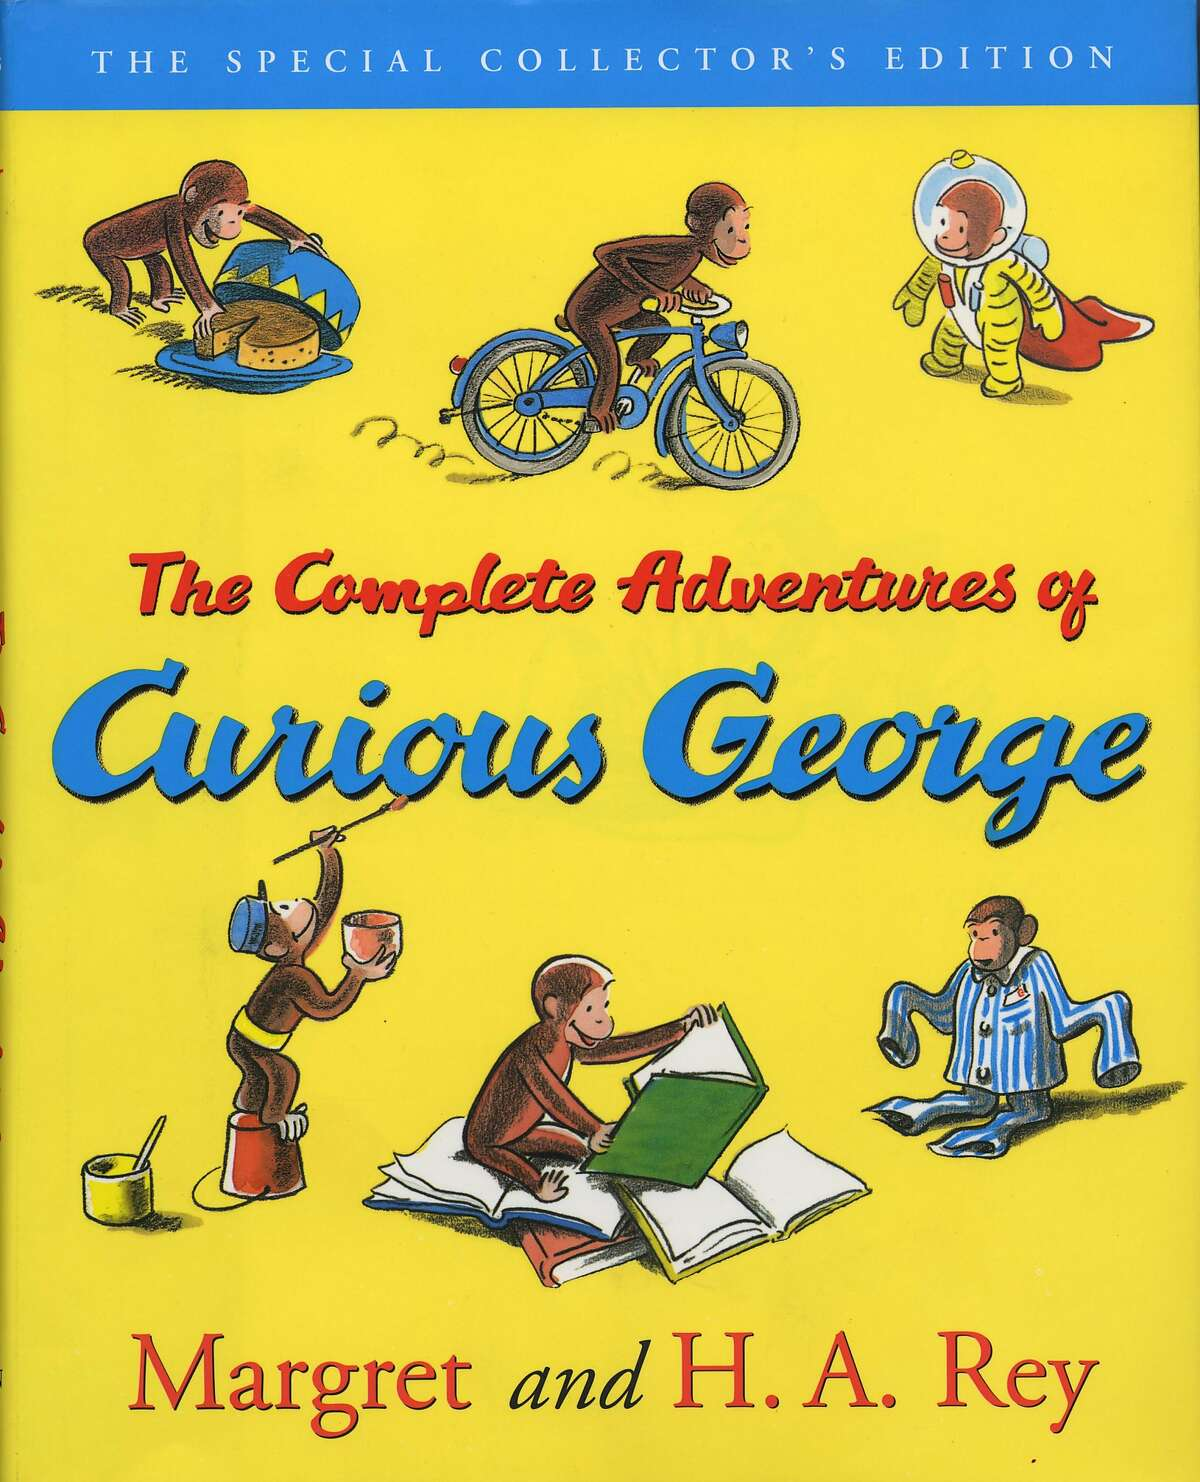 The Special Collector's Edition The Complete Adventures of Curious George By Margret and H. A. Rey